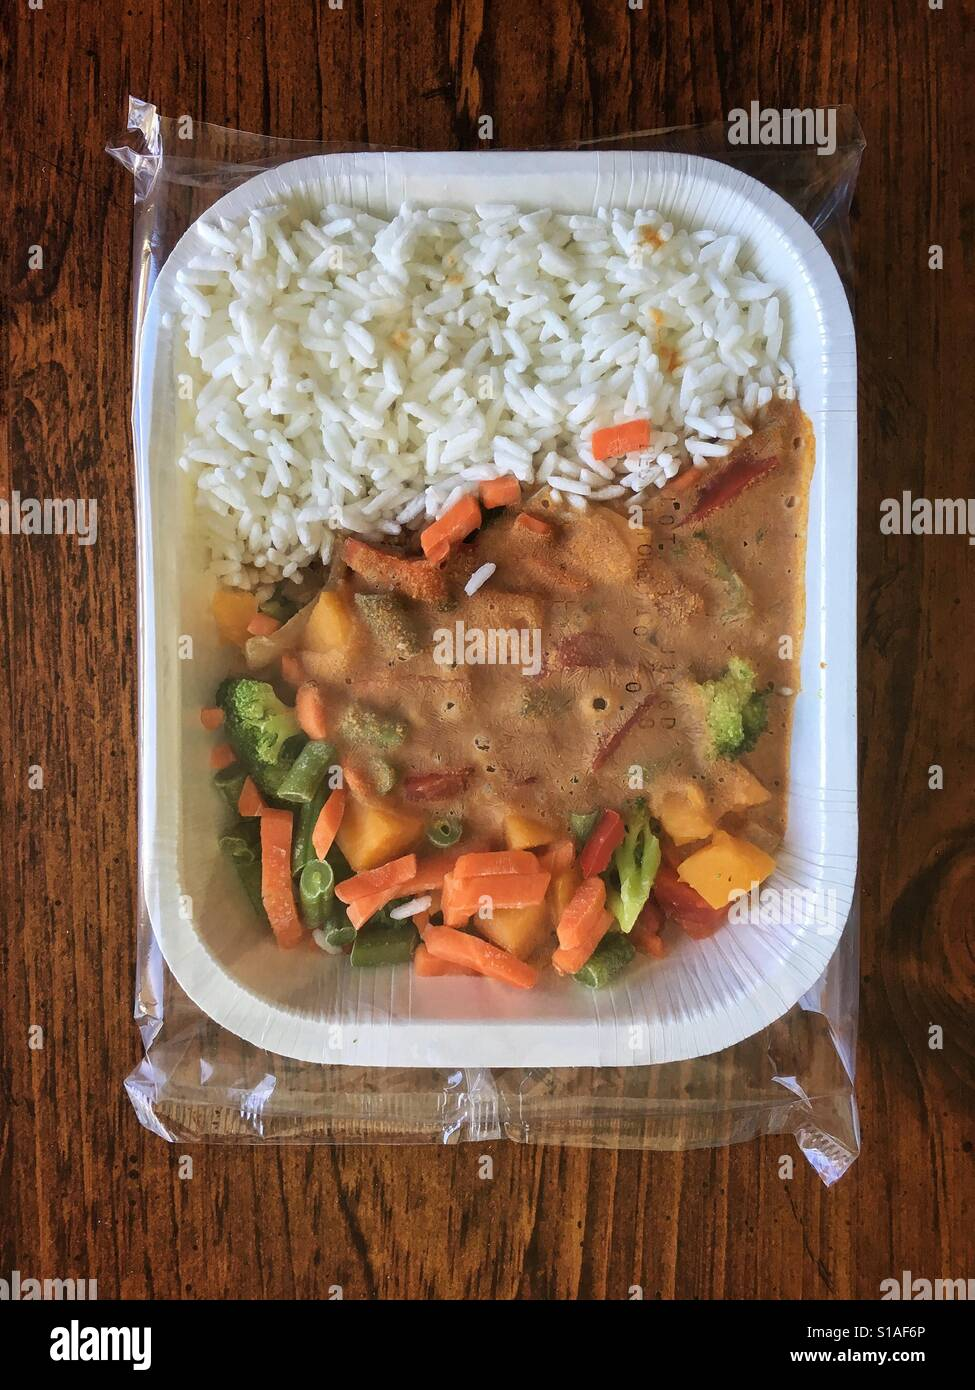 Microwave dinner curry and rice - Stock Image